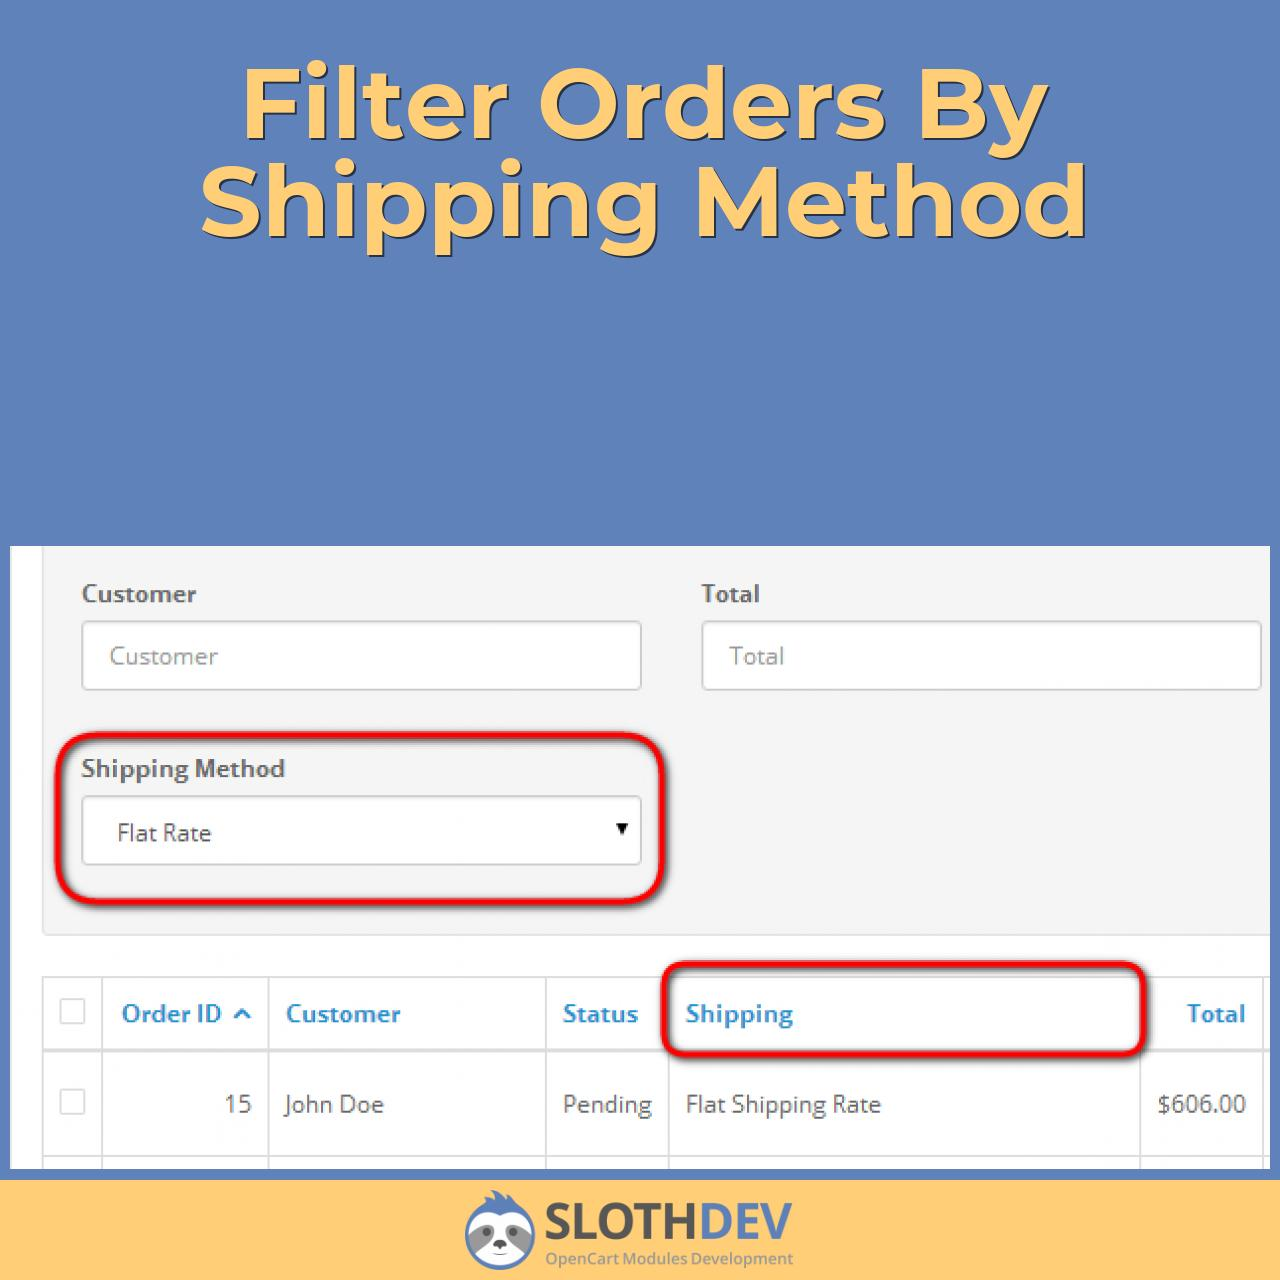 Filter Orders By Shipping Method